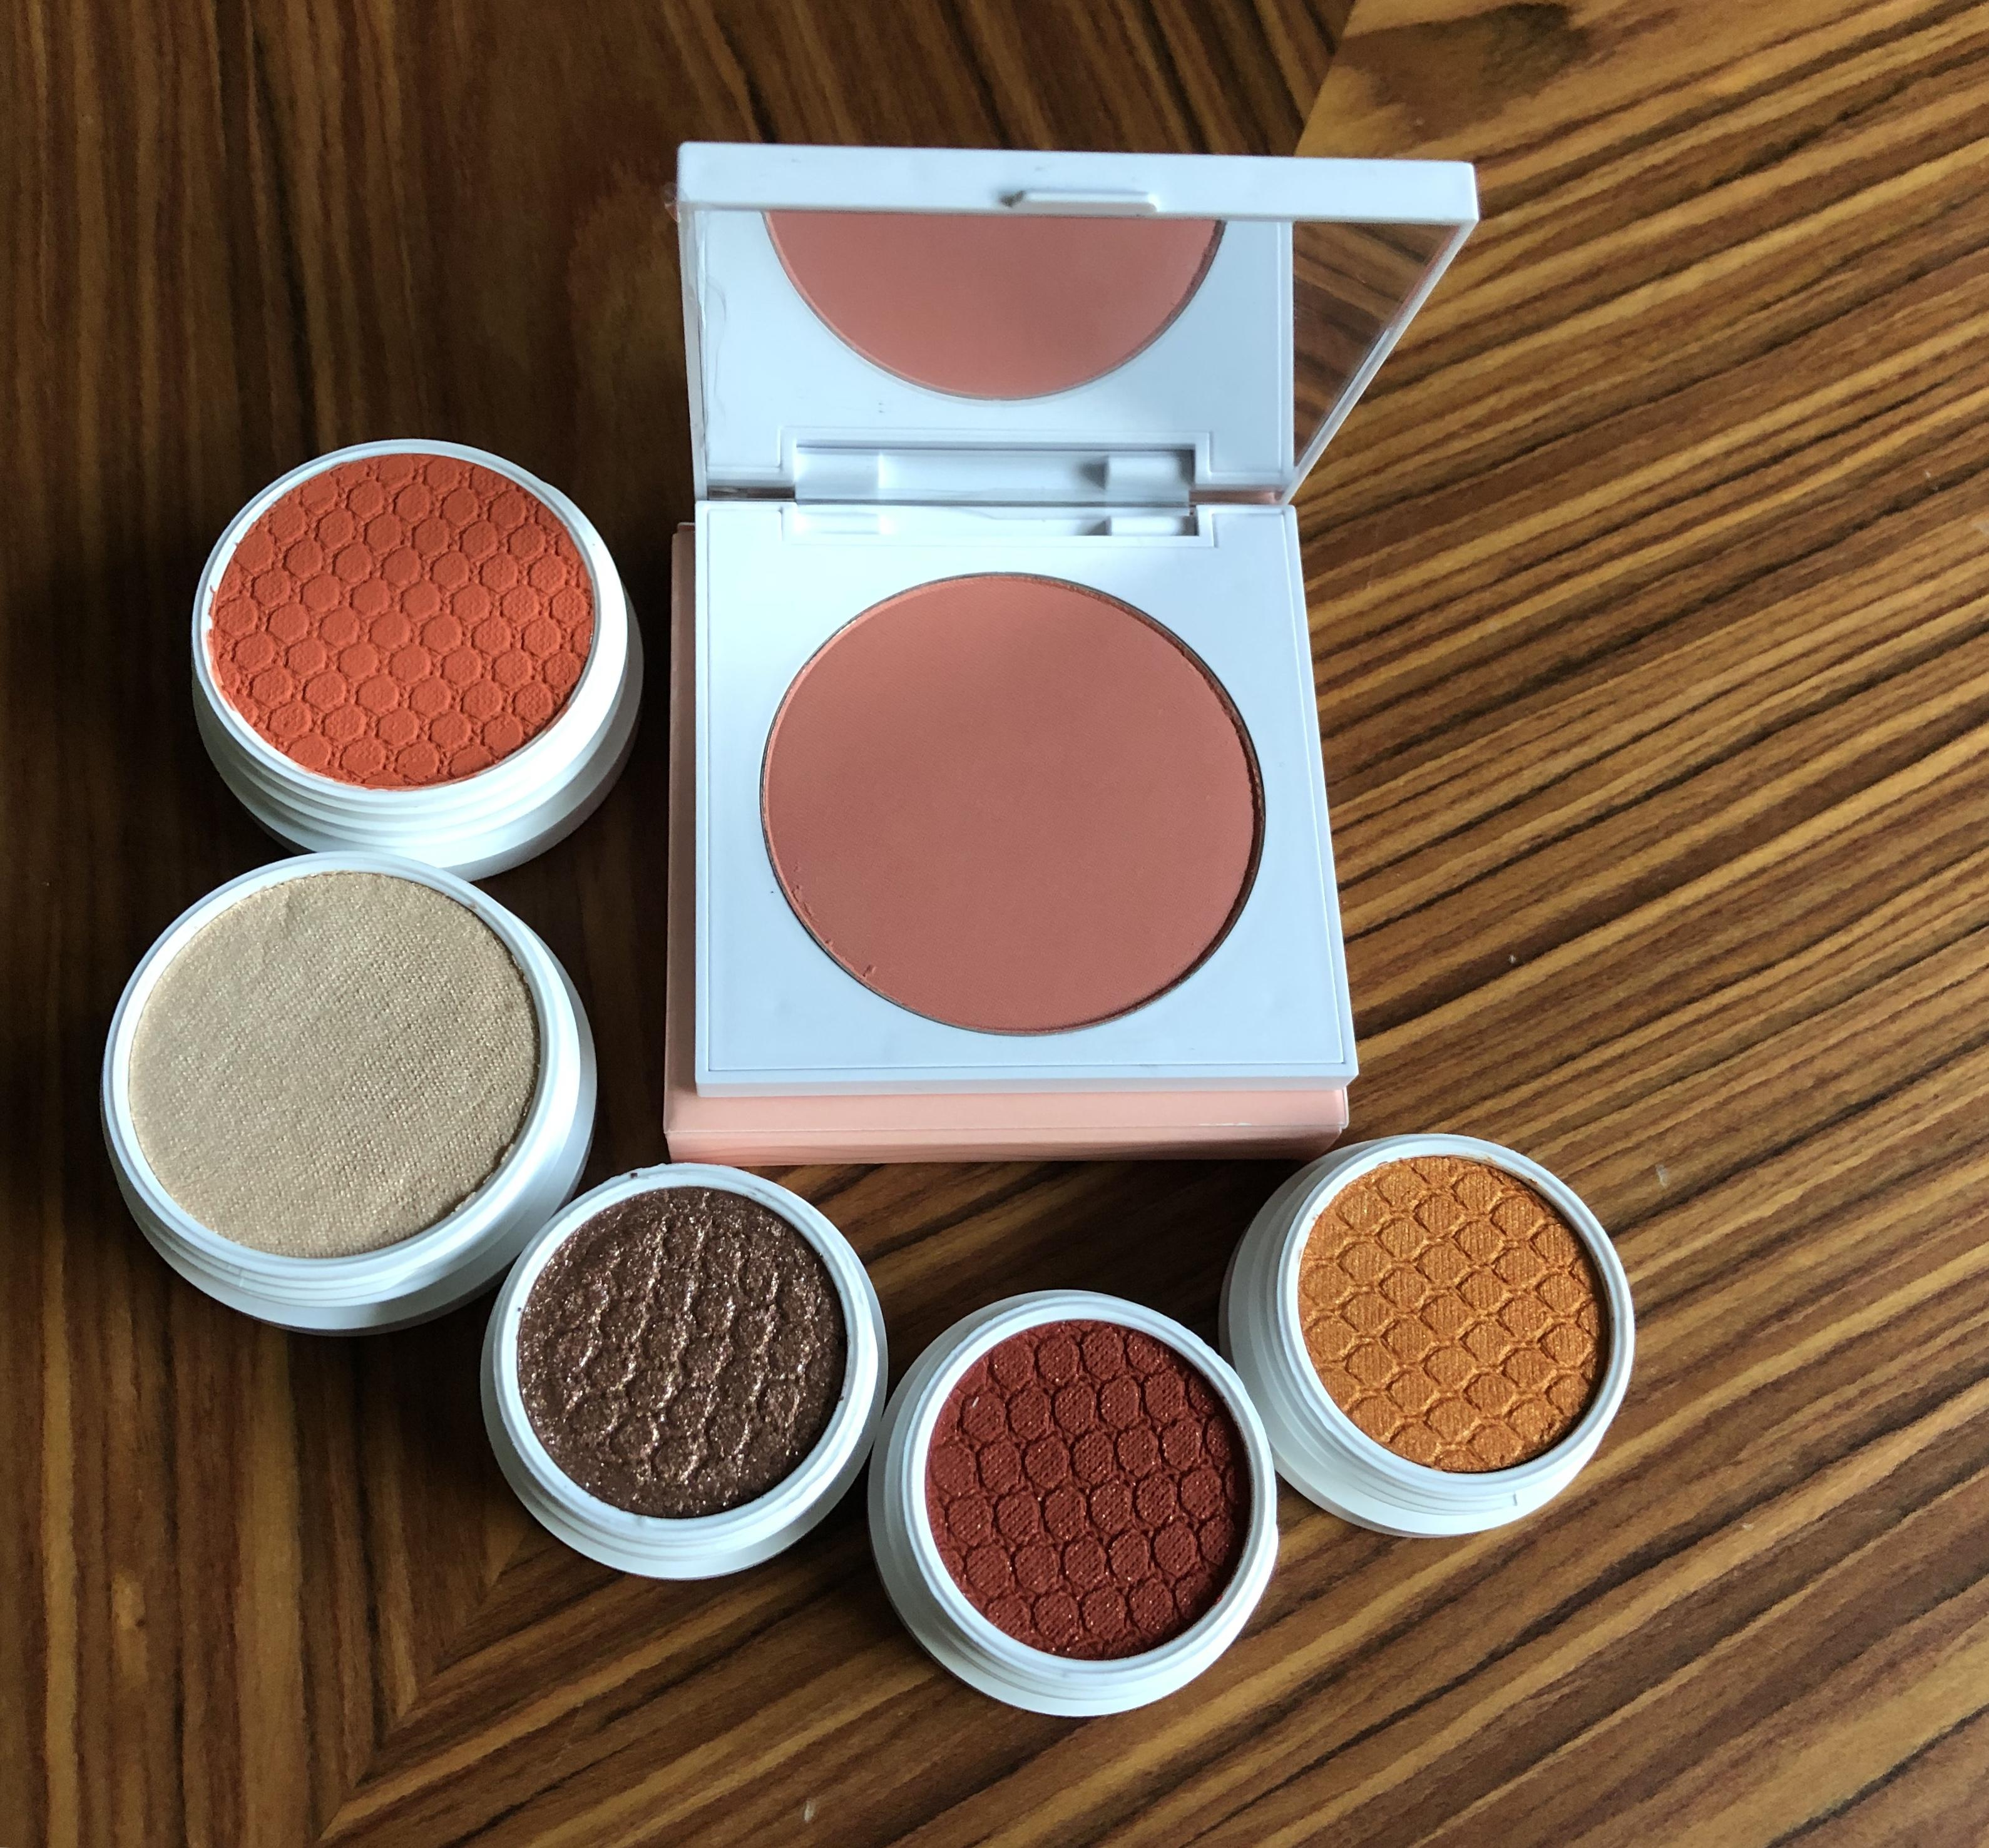 My ColourPop Order Came in Today! – MADNESS GOODNESS BLOG